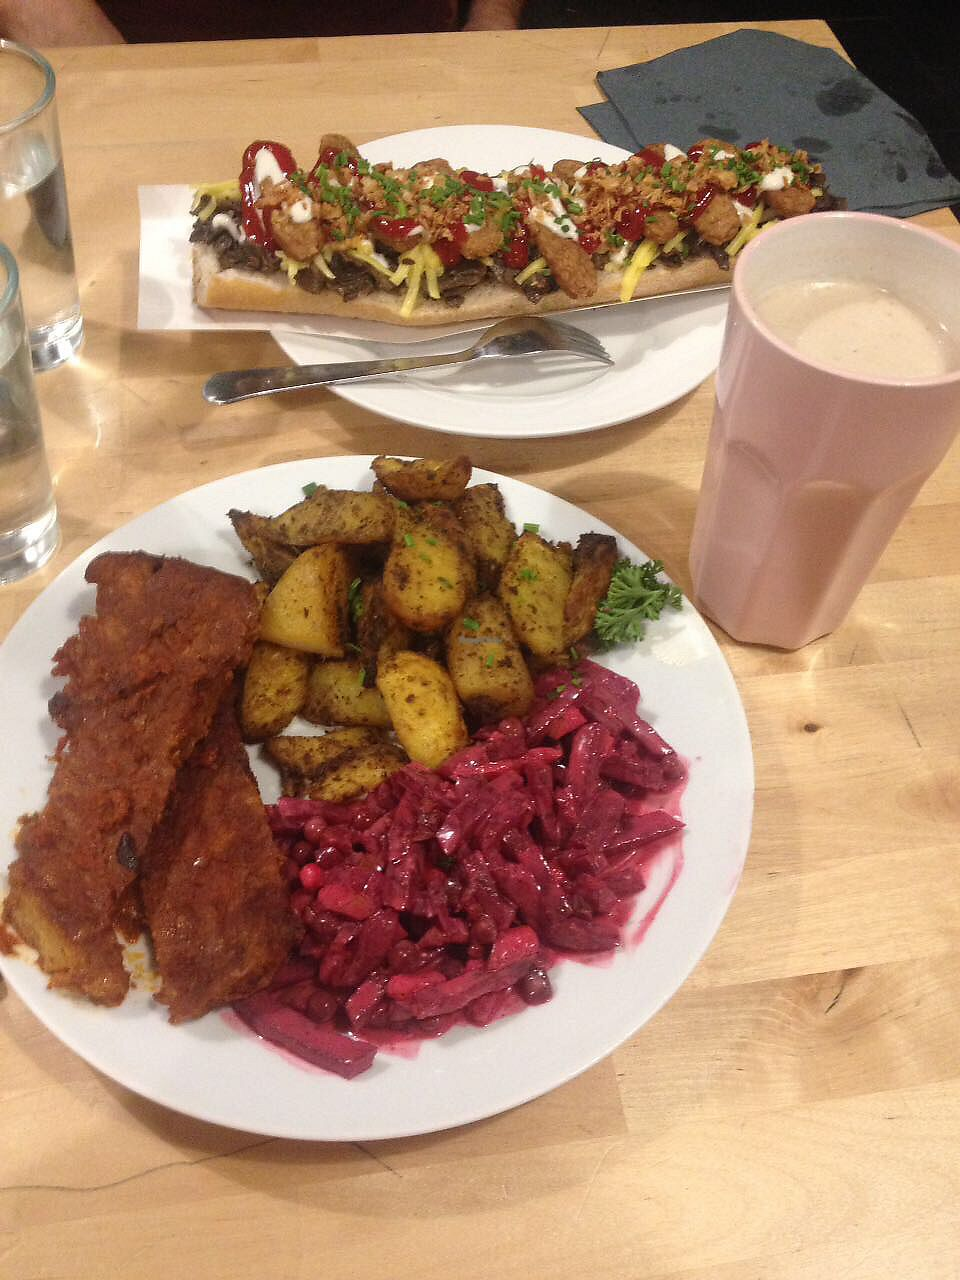 """Photo of Lokal Vegan Bistro  by <a href=""""/members/profile/Zmanta"""">Zmanta</a> <br/>Spare Ribs and Zapiekanka <br/> October 12, 2017  - <a href='/contact/abuse/image/55545/314589'>Report</a>"""